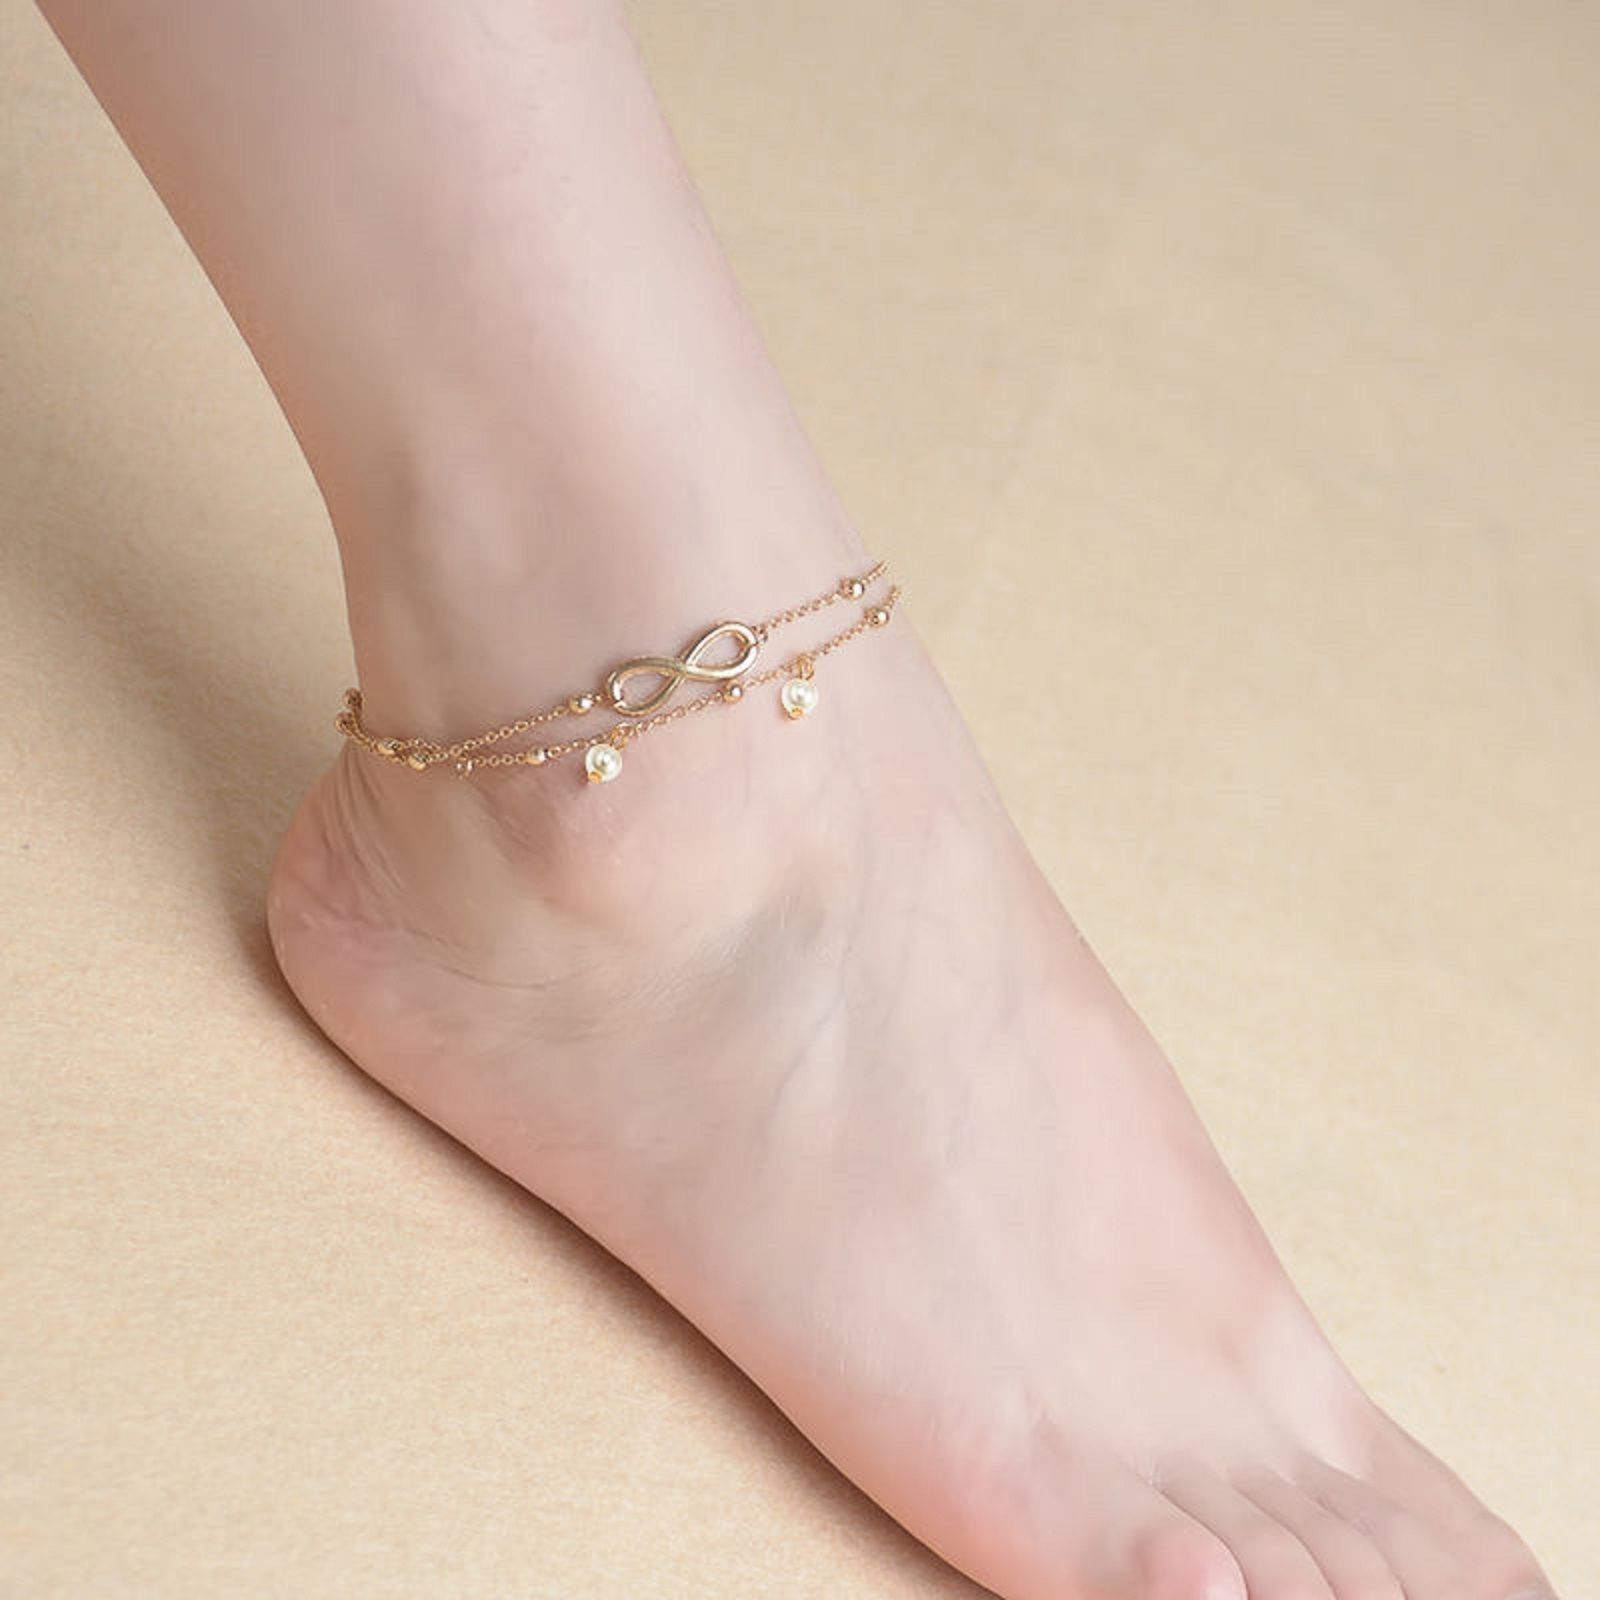 womens beach on jewellery string pretty anklet feet ankle bracelets unique ksvhs